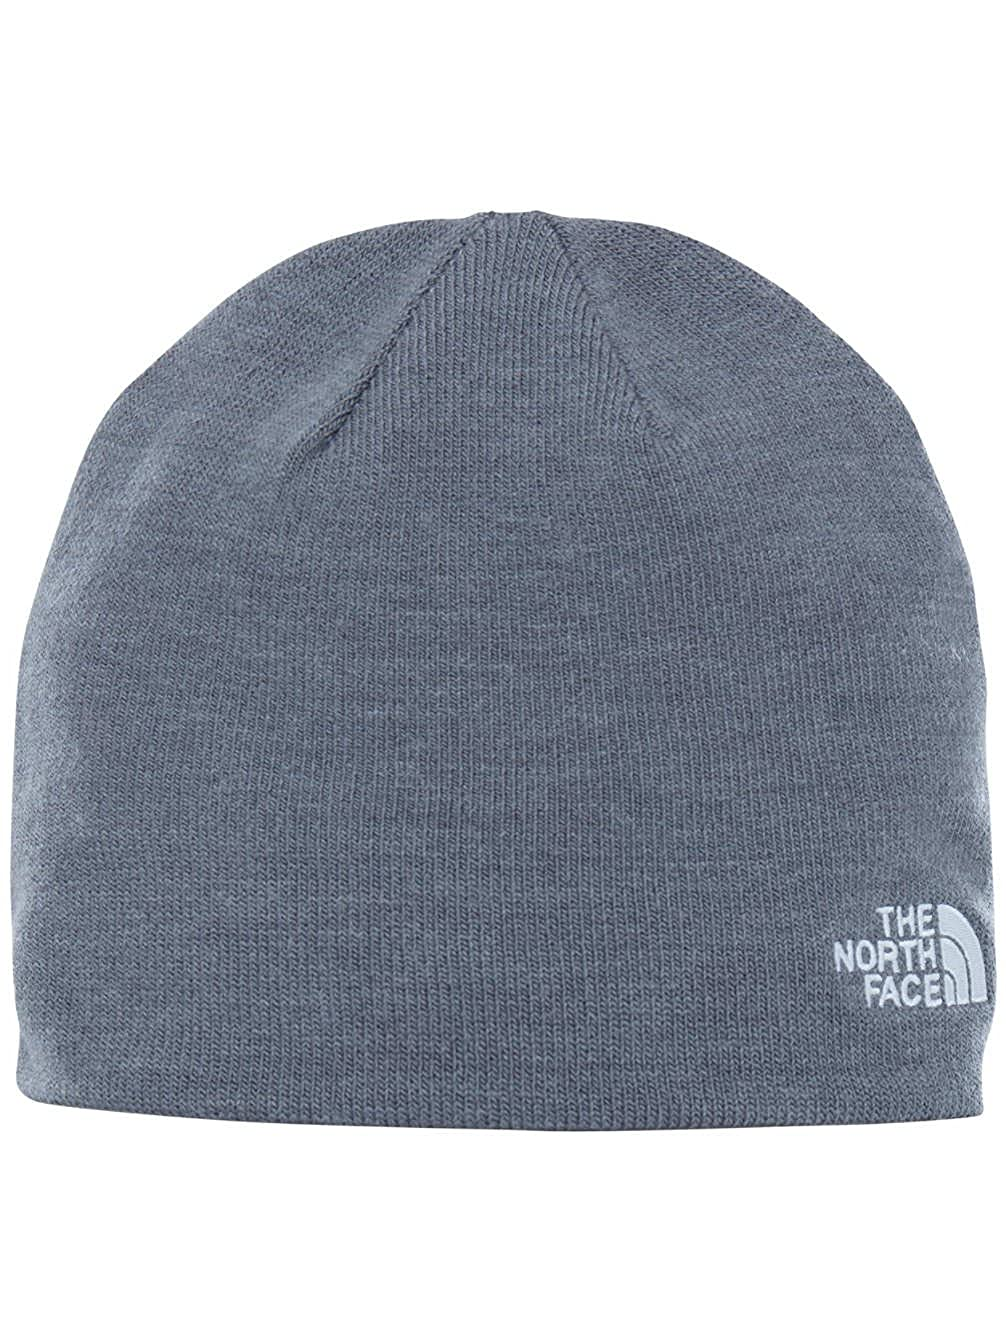 2dacd166f The North Face Unisex Adult's Gateway Beanie